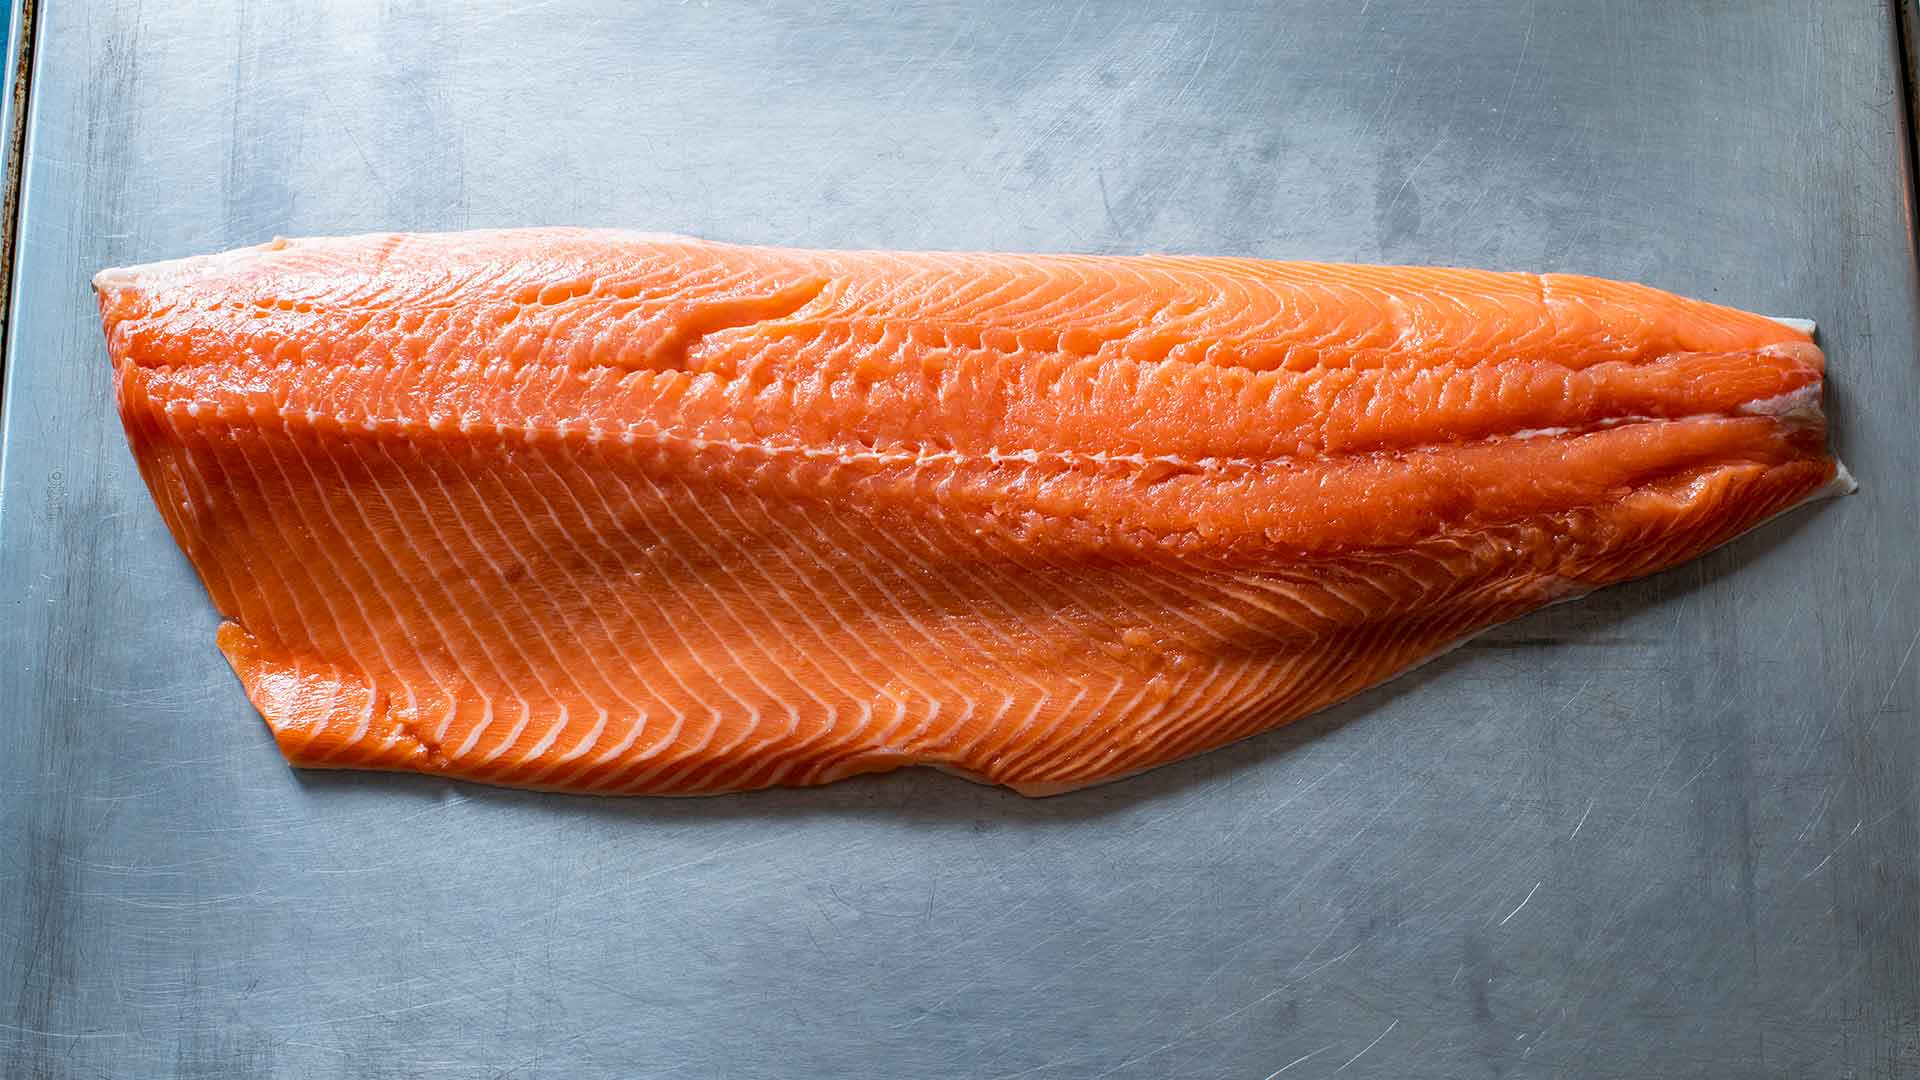 Ideal Fish Recipe, Pan-Roasted Salmon with Garlic and Thyme